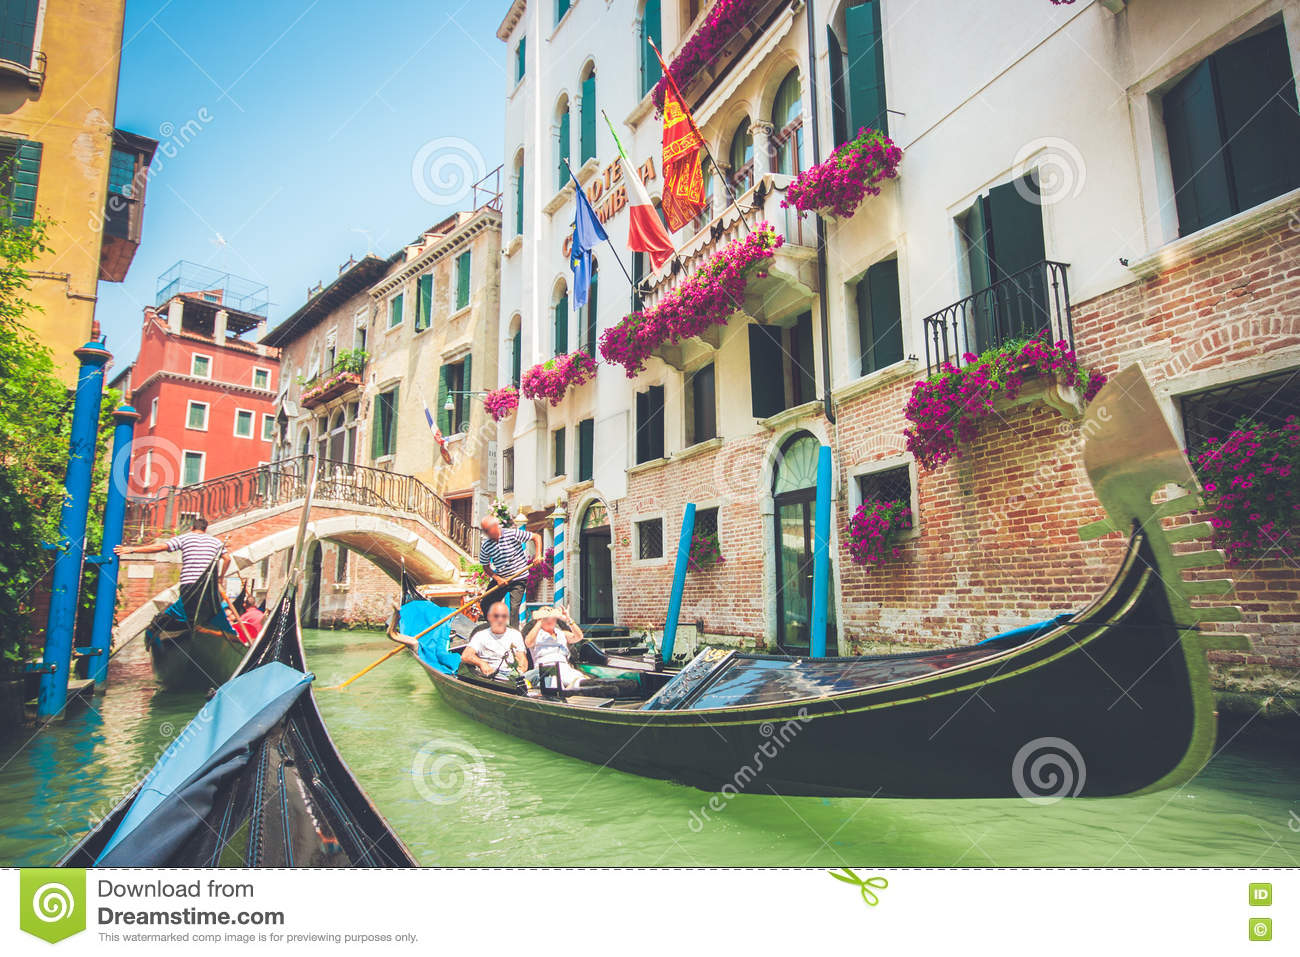 Gondolas on canal in Venice, Italy with retro vintage filter effect